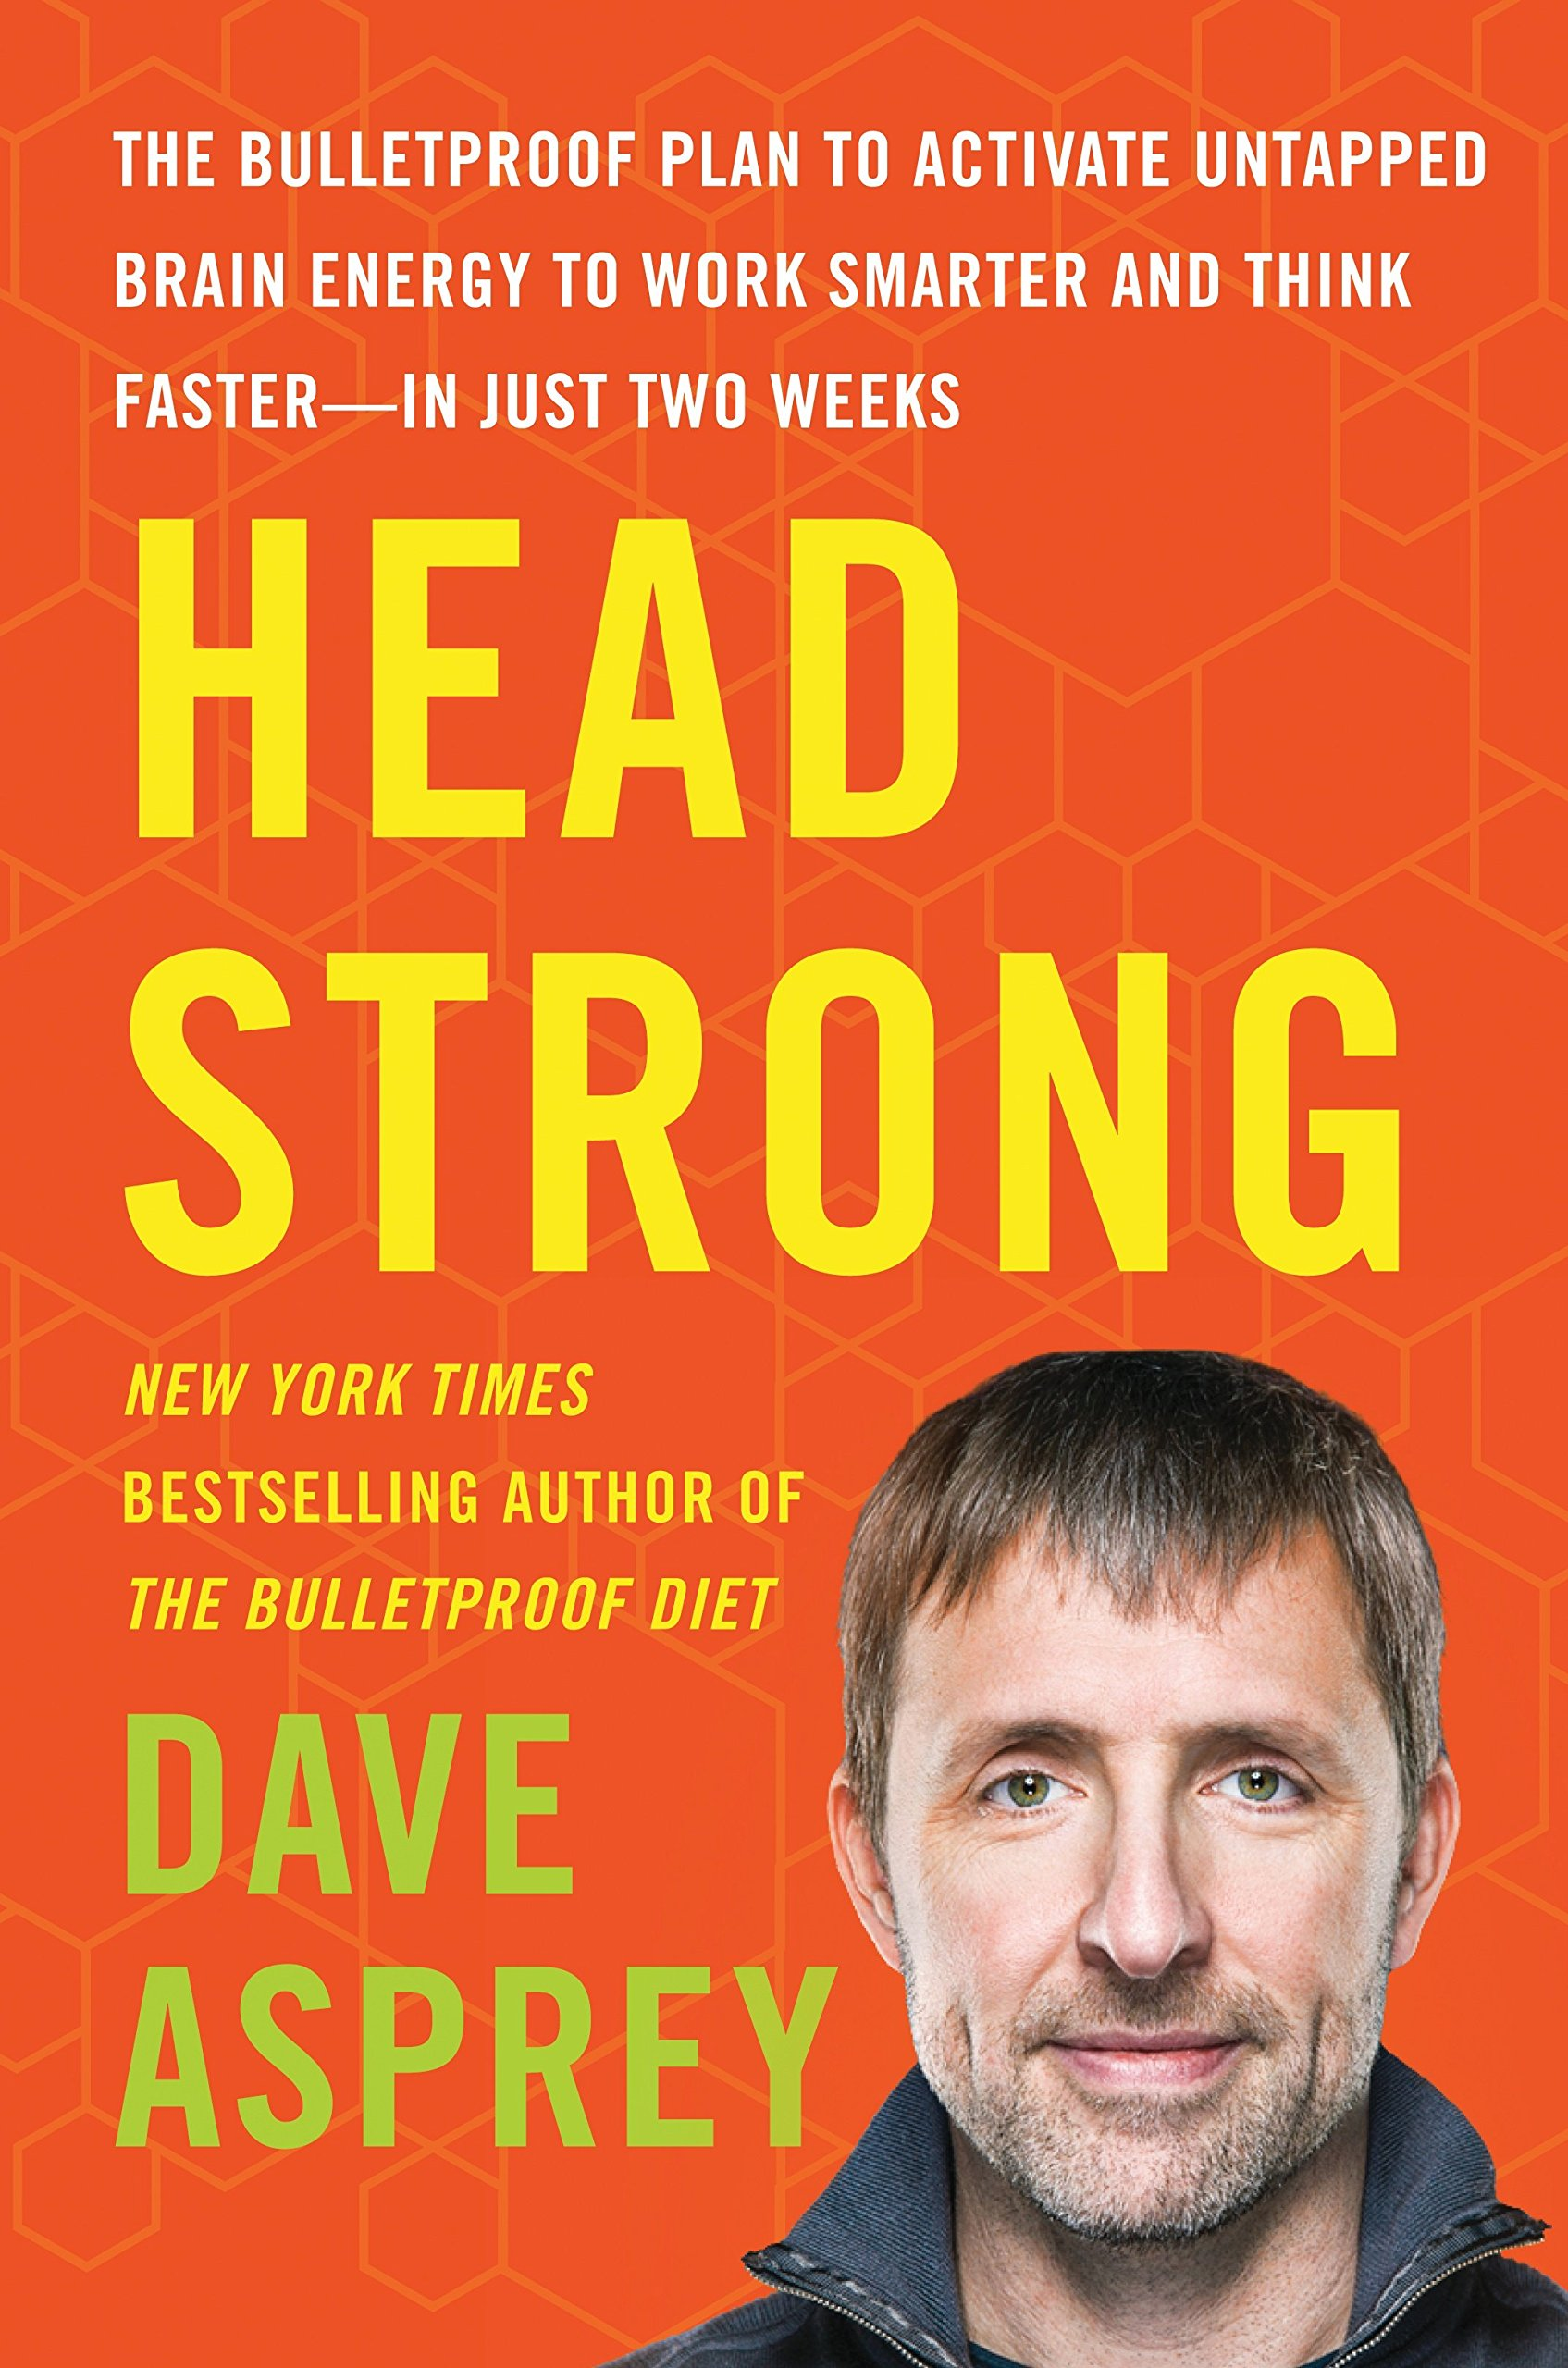 Head Strong Bulletproof Activate Faster product image